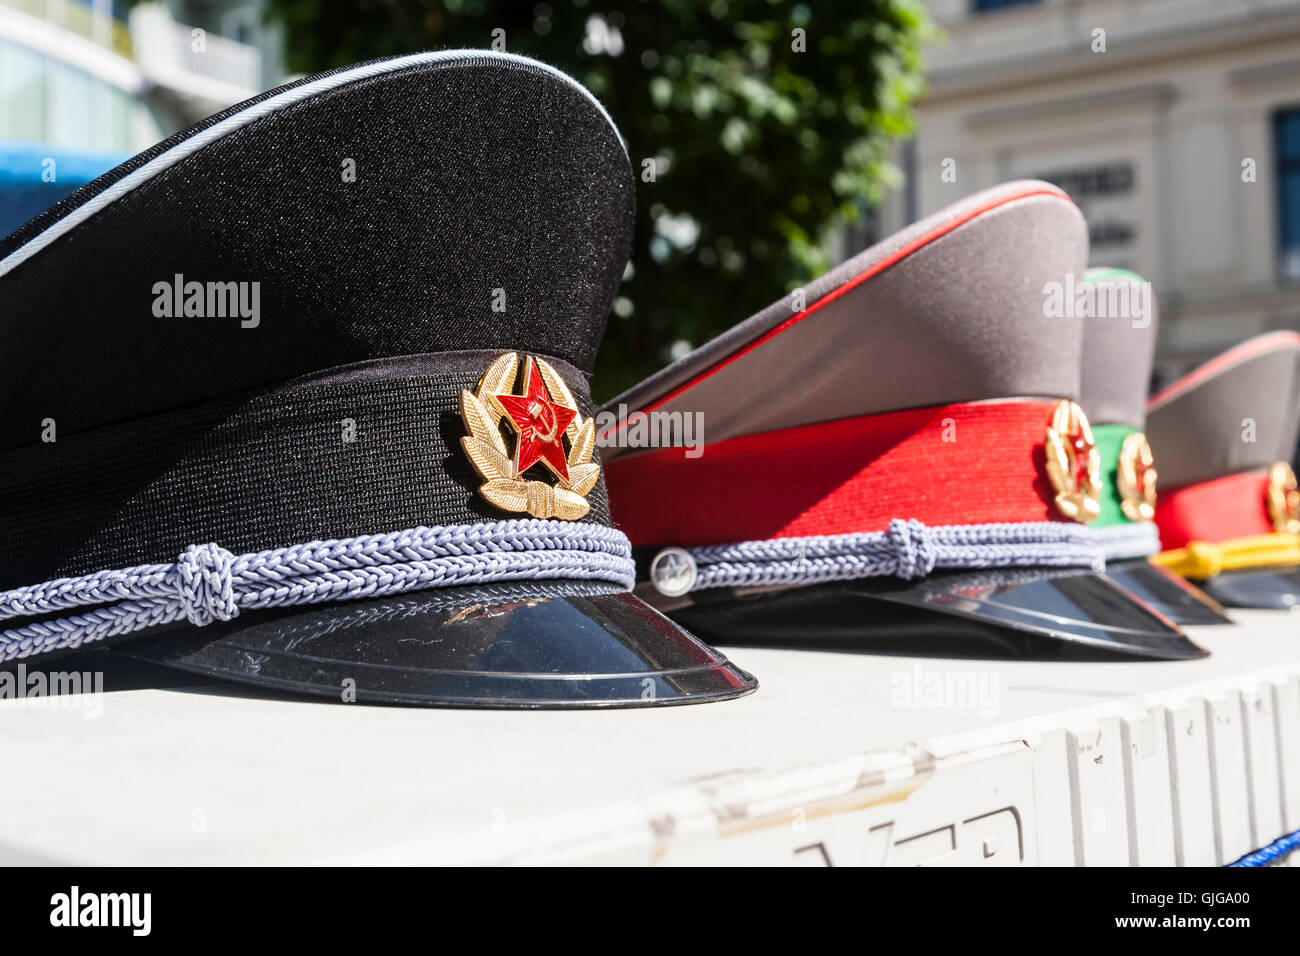 8a8f87b2b79 Soviet Military Hats on sale as souvenirs for tourists at Check Point  Charlie